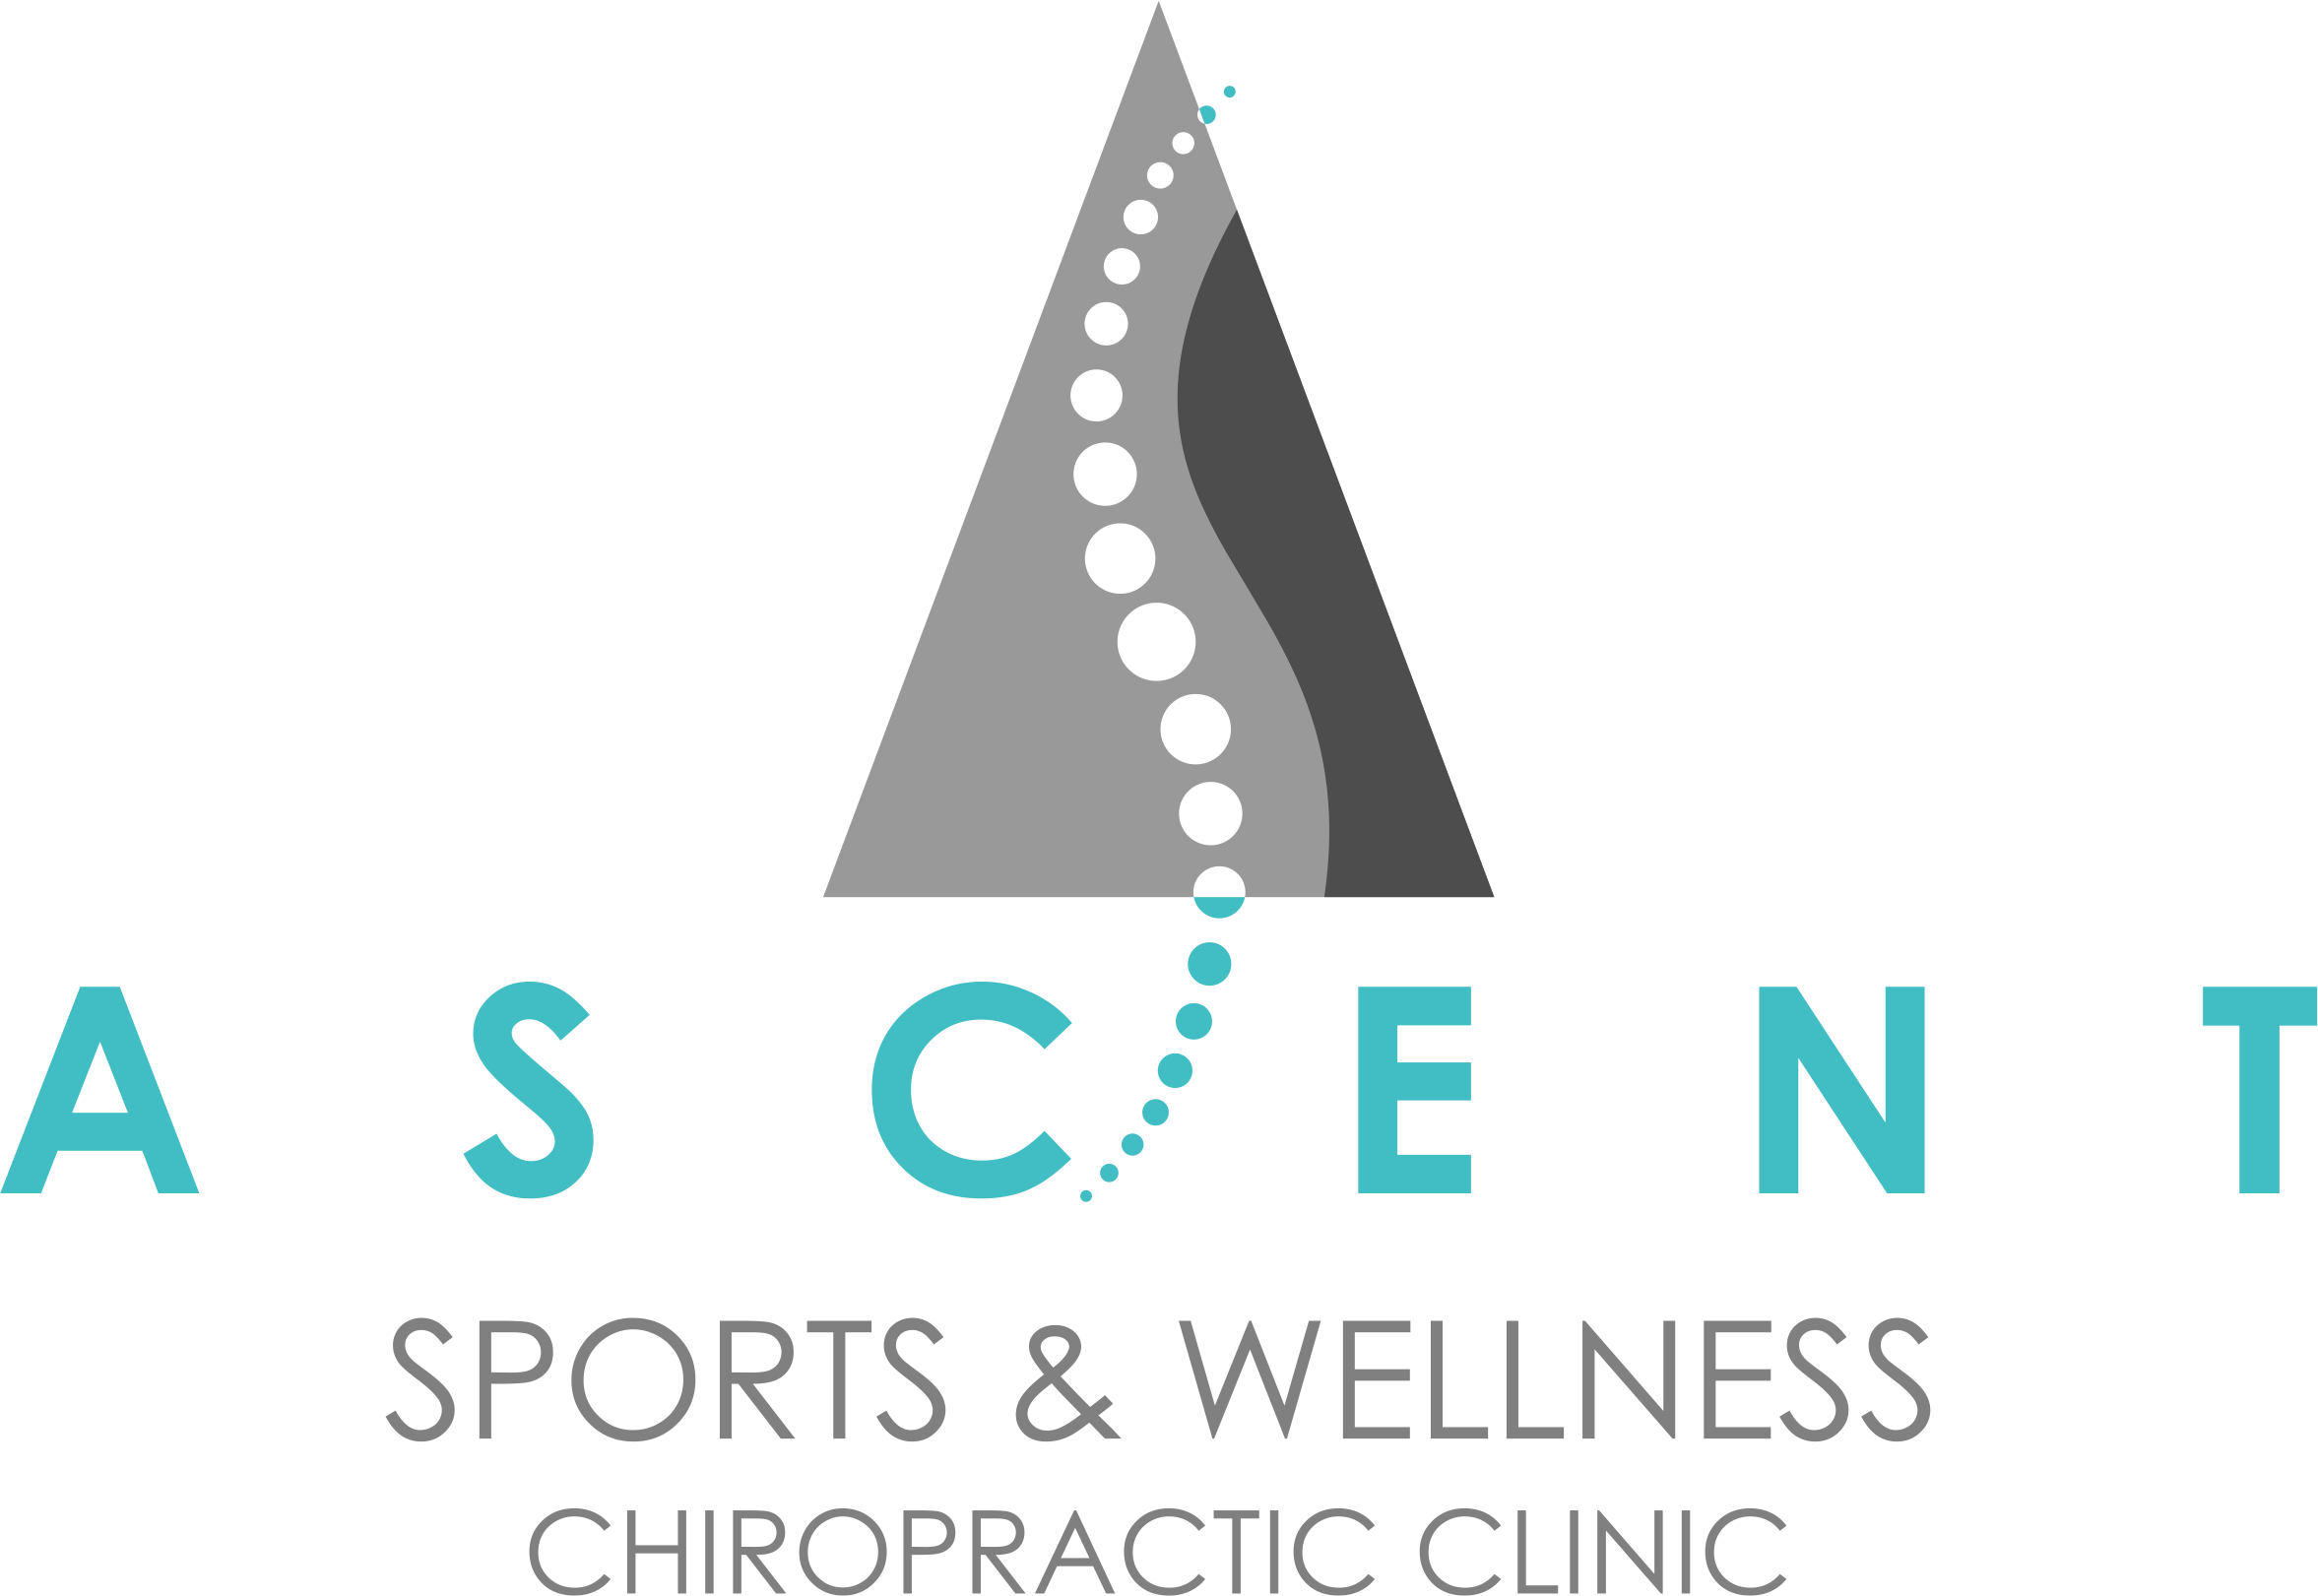 Ascent Sports & Wellness Chiropractic Clinic - Brookfield, WI Chiropractor